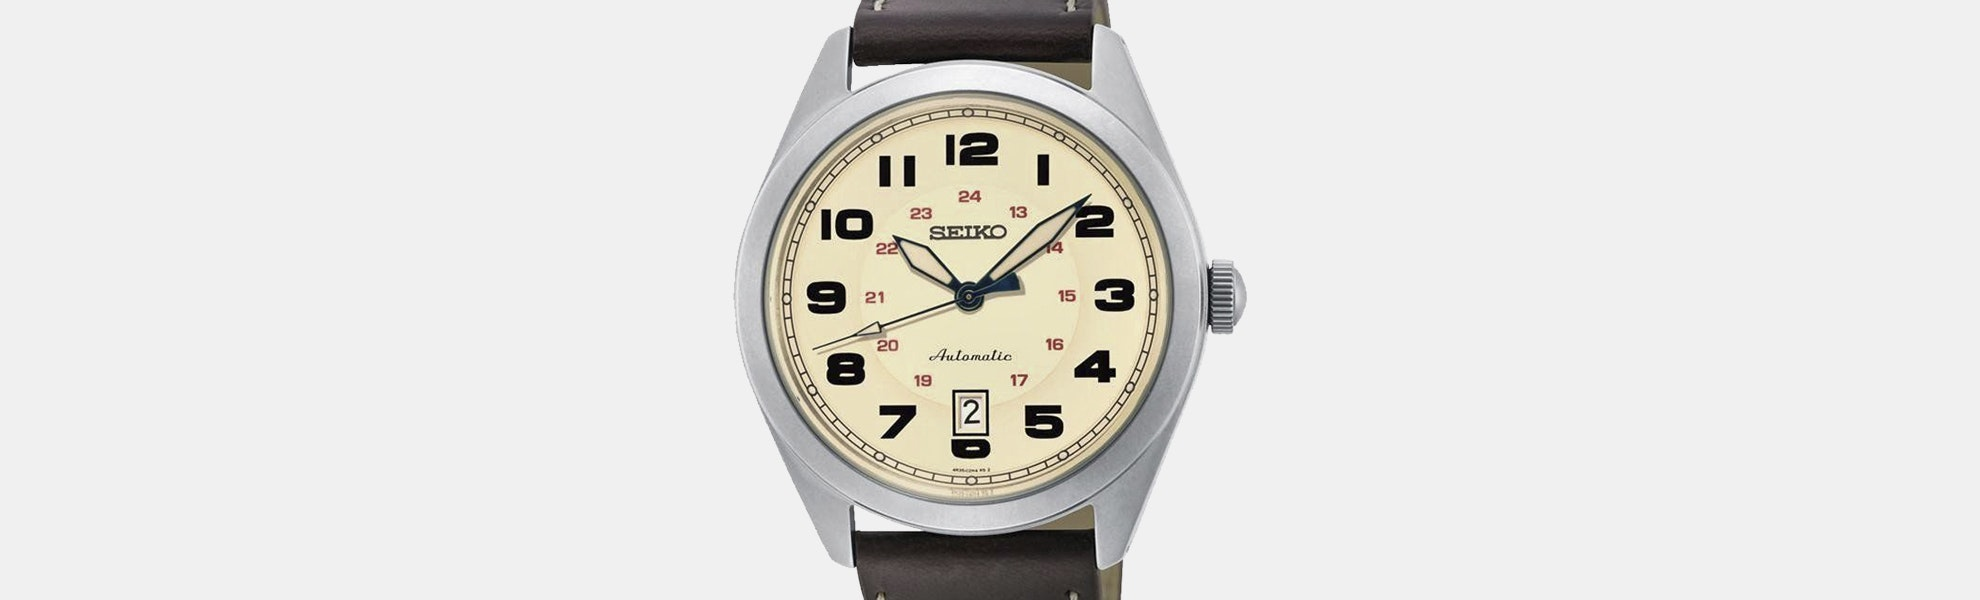 Seiko SRPC8X Automatic Watch